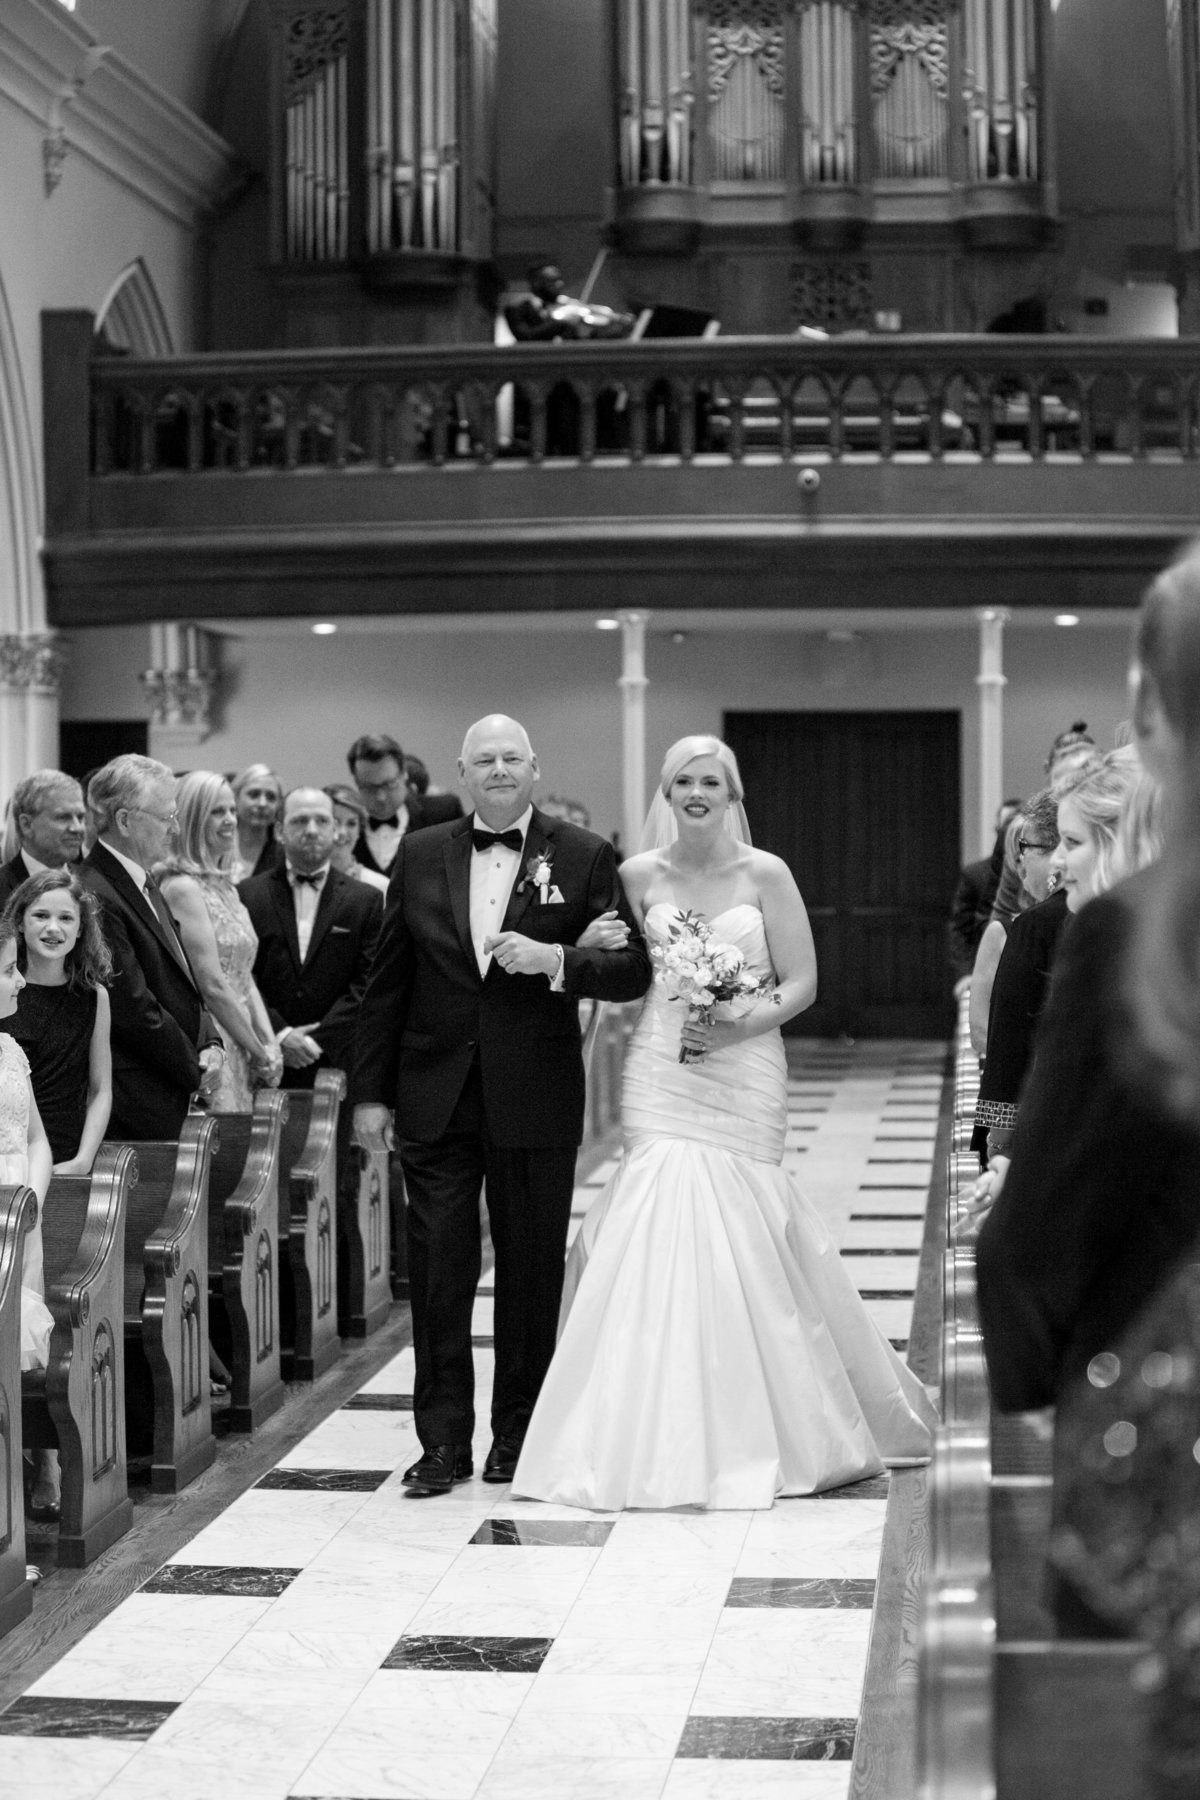 Cottrell Wedding - Natalie Probst Photography179